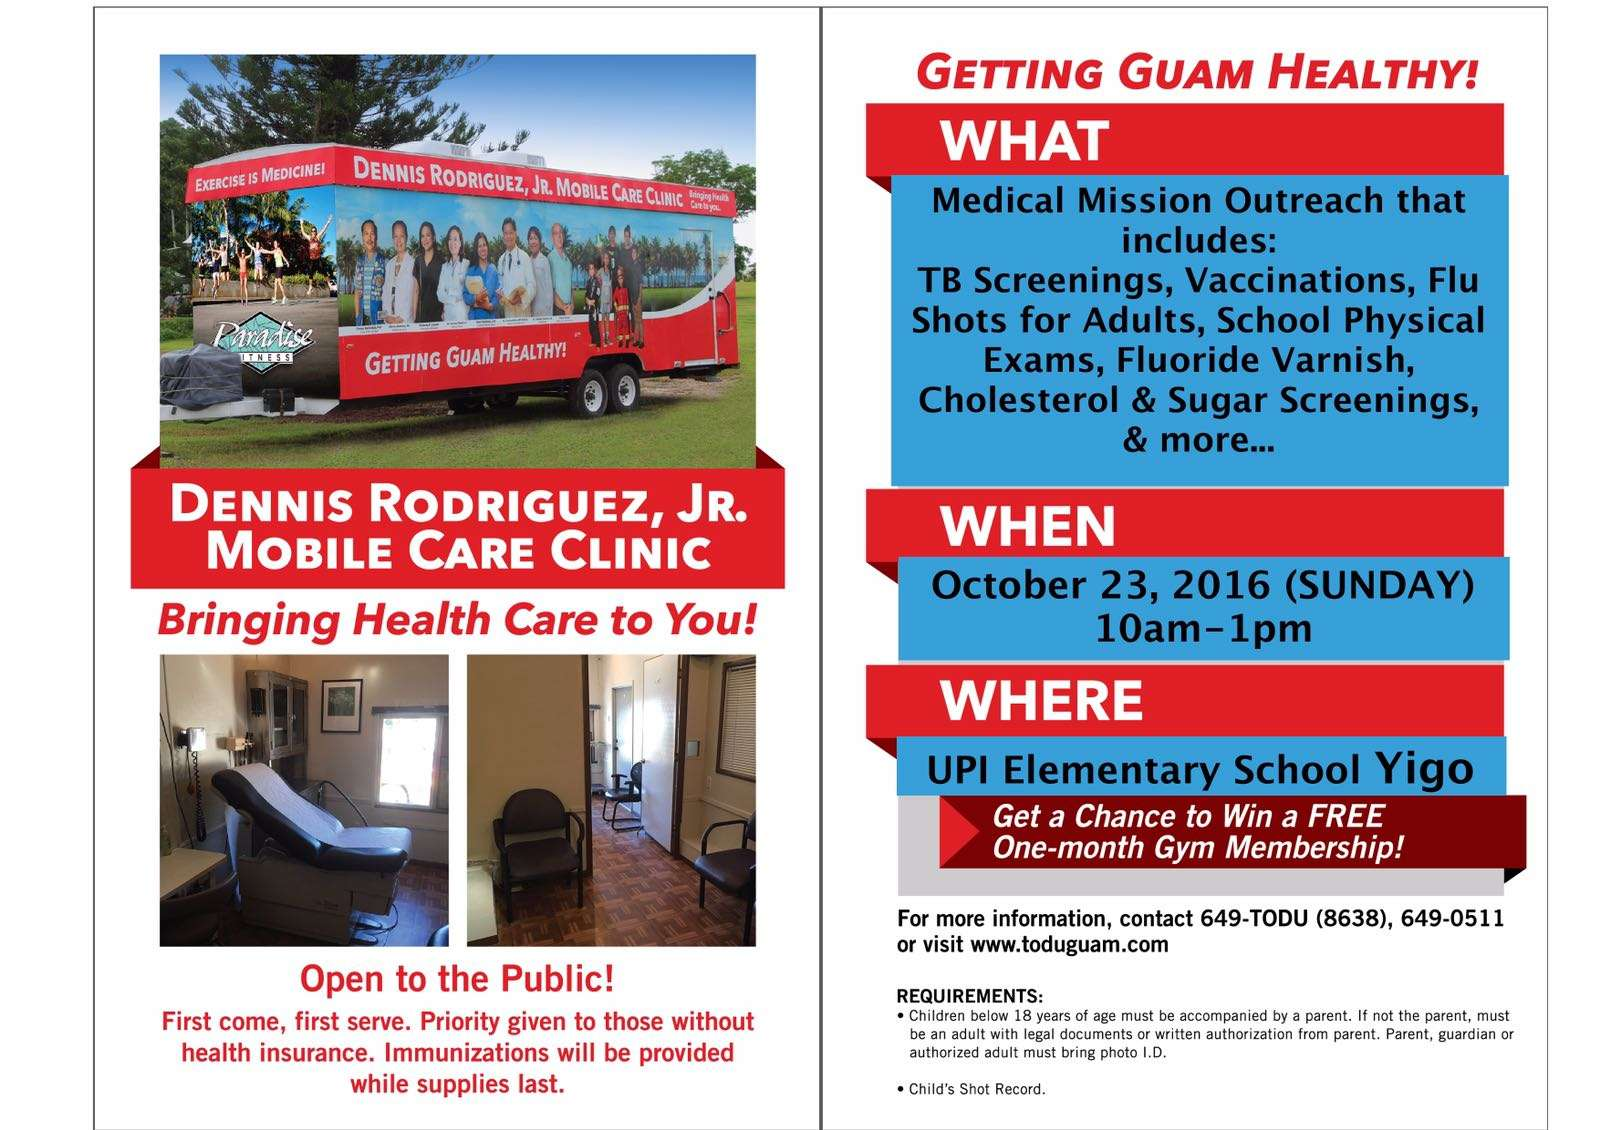 Mobile Care Clinic